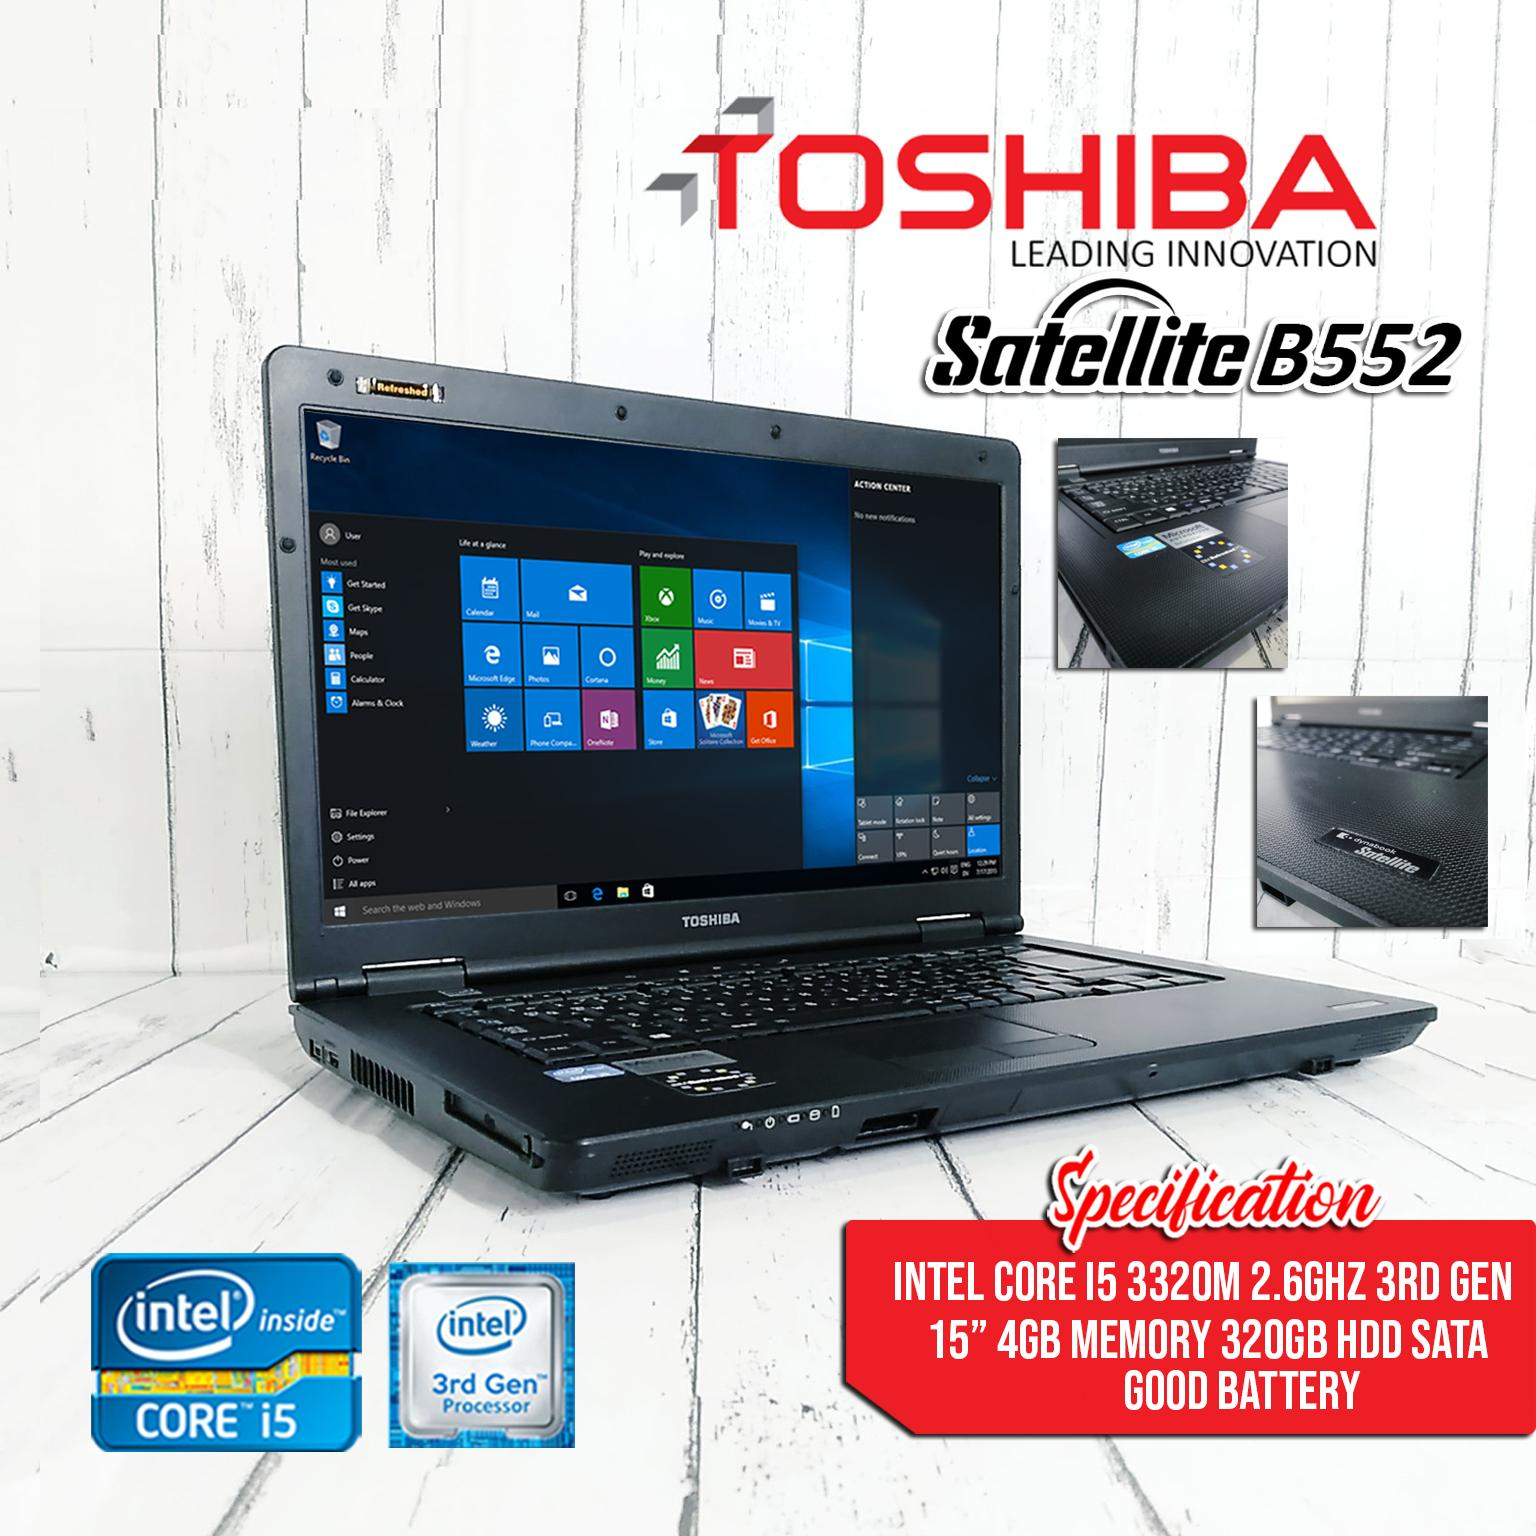 LAPTOP Toshiba Satelite B552 core i5 3320 2 6ghz (3rd gen) 4GB 320GB /  LAPTOP on sale / student / online job